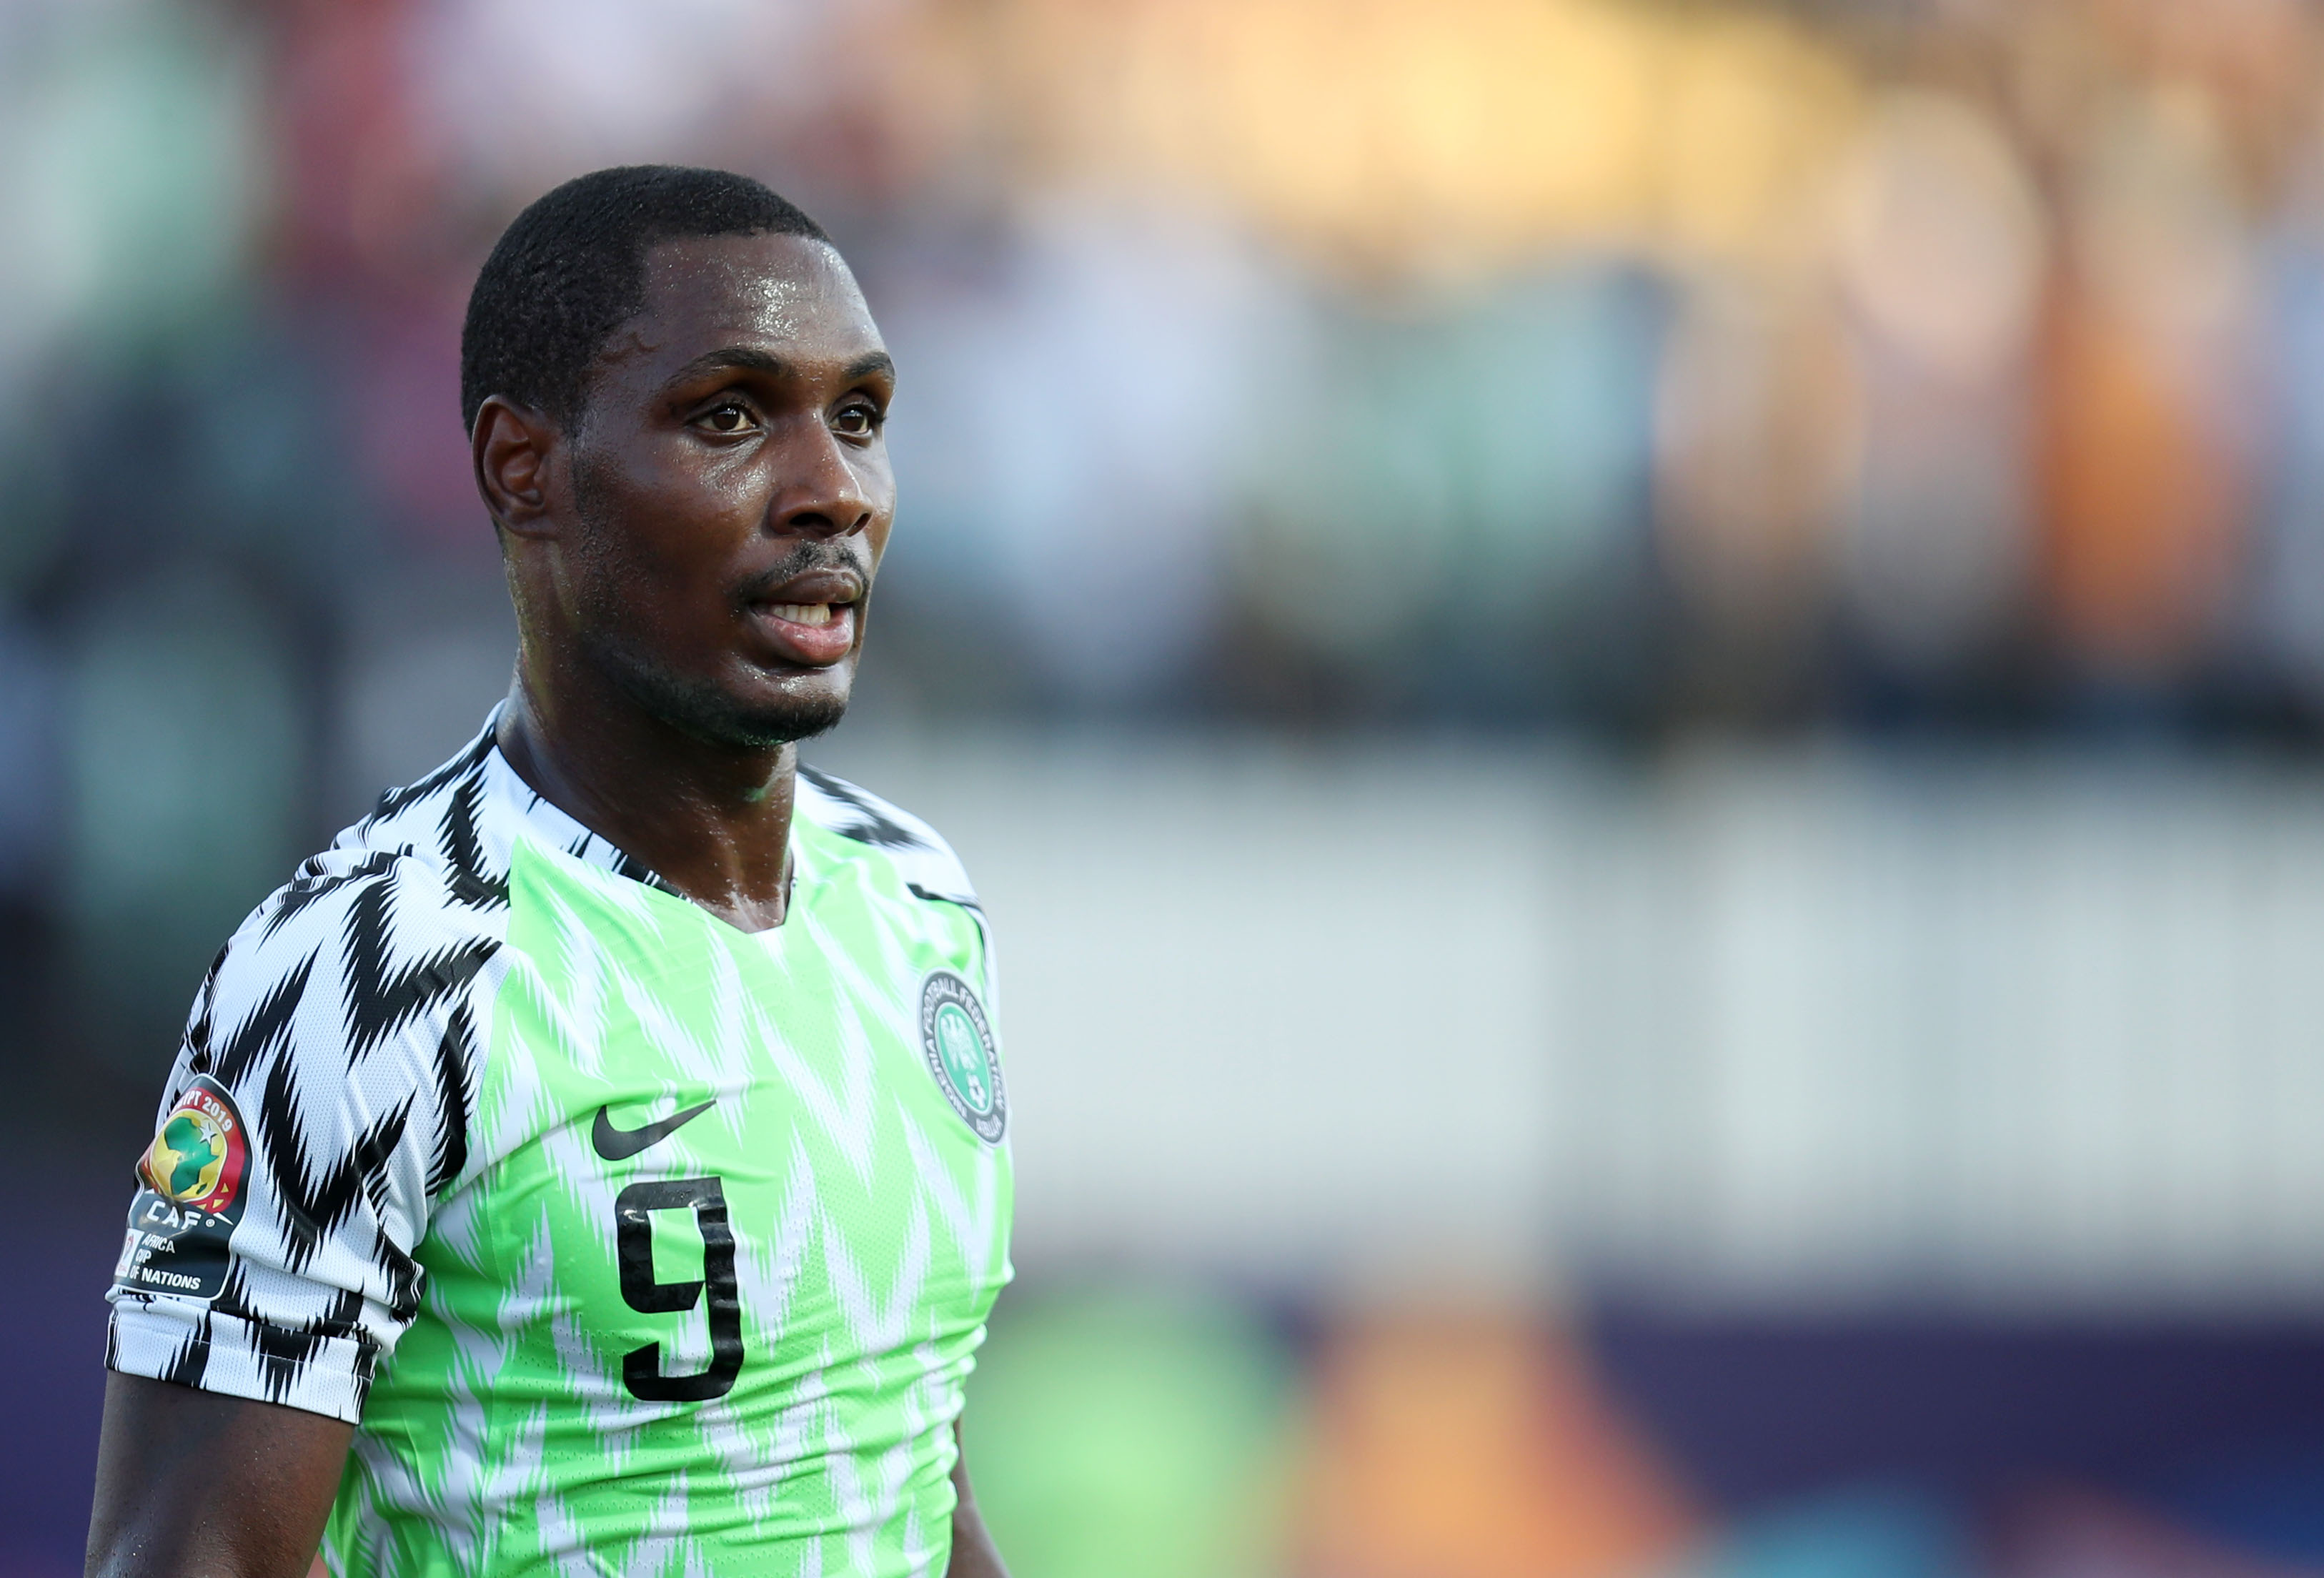 Odion Ighalo pictured at Manchester United training base for first session